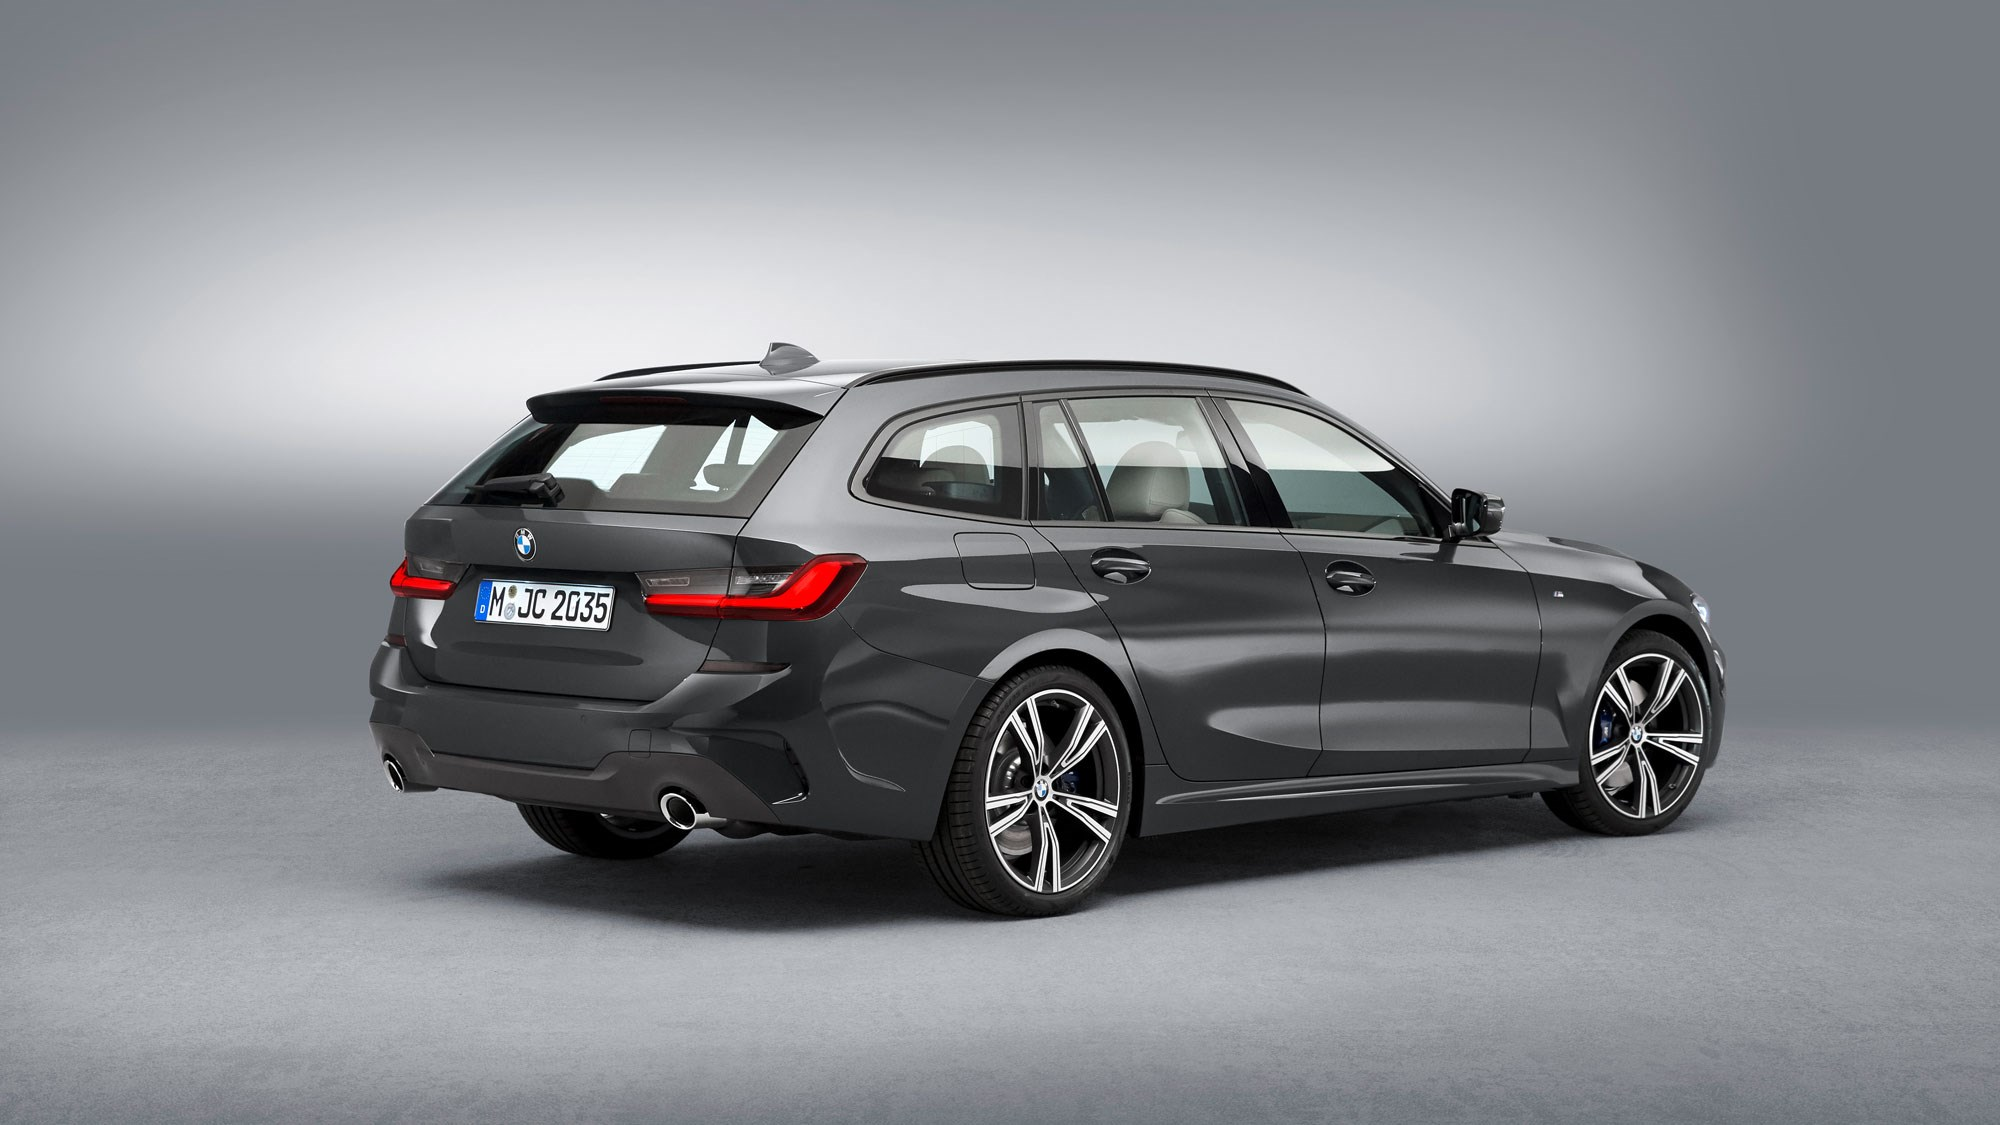 New Bmw 3 Series Touring M Performance Parts For The Fast Estate